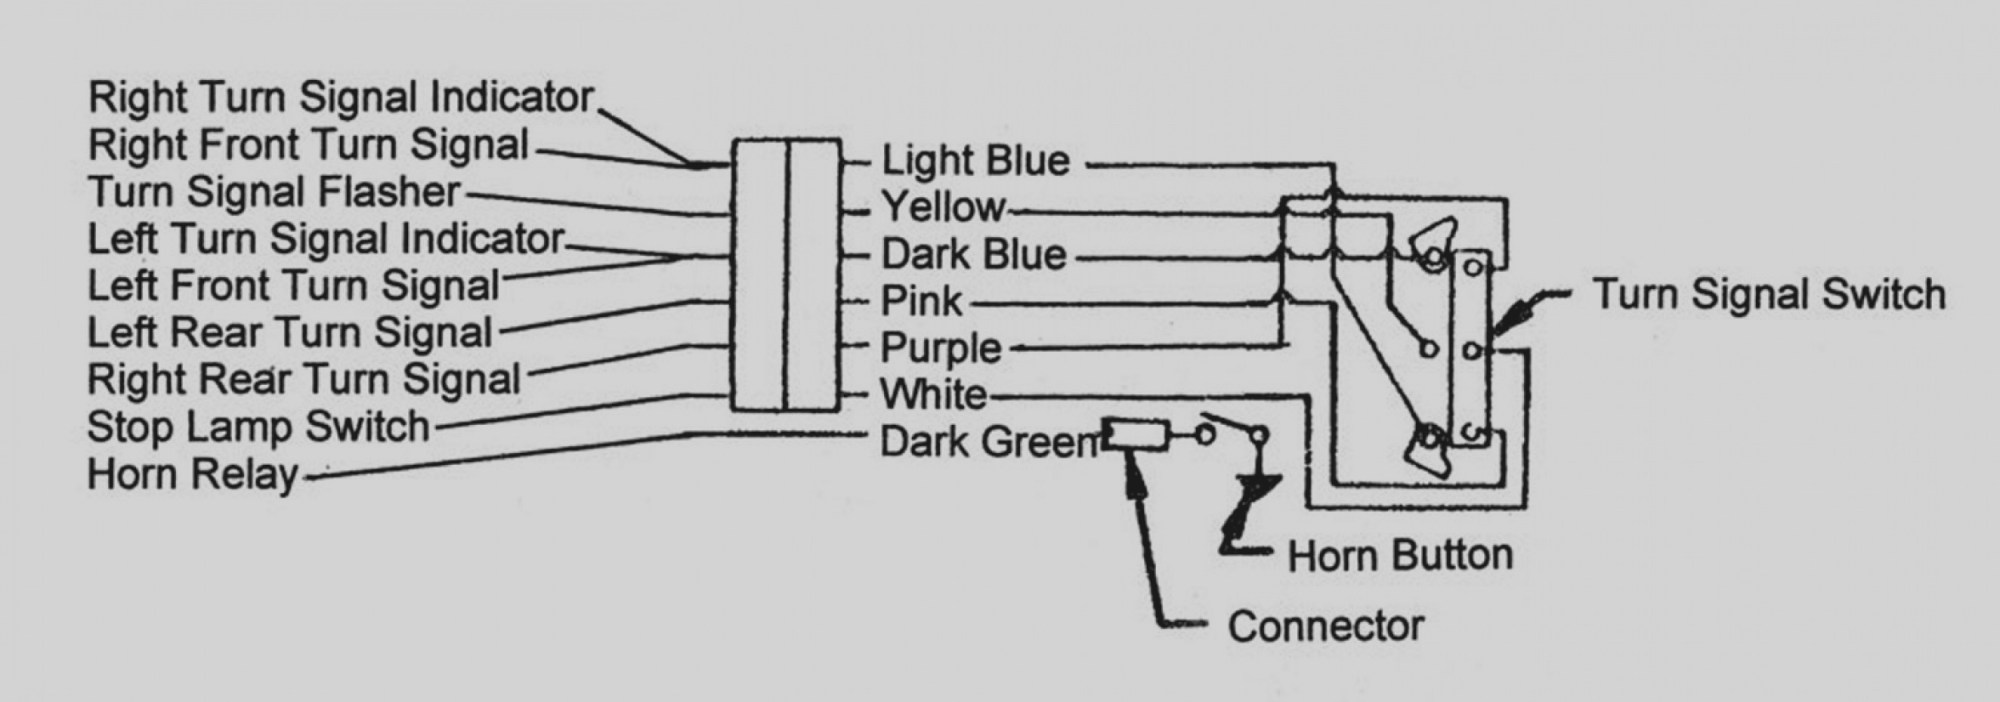 hight resolution of gm turn signal wiring wiring diagram third level rh 20 21 jacobwinterstein com 1970 vw turn signal wiring diagram 1970 vw turn signal wiring diagram